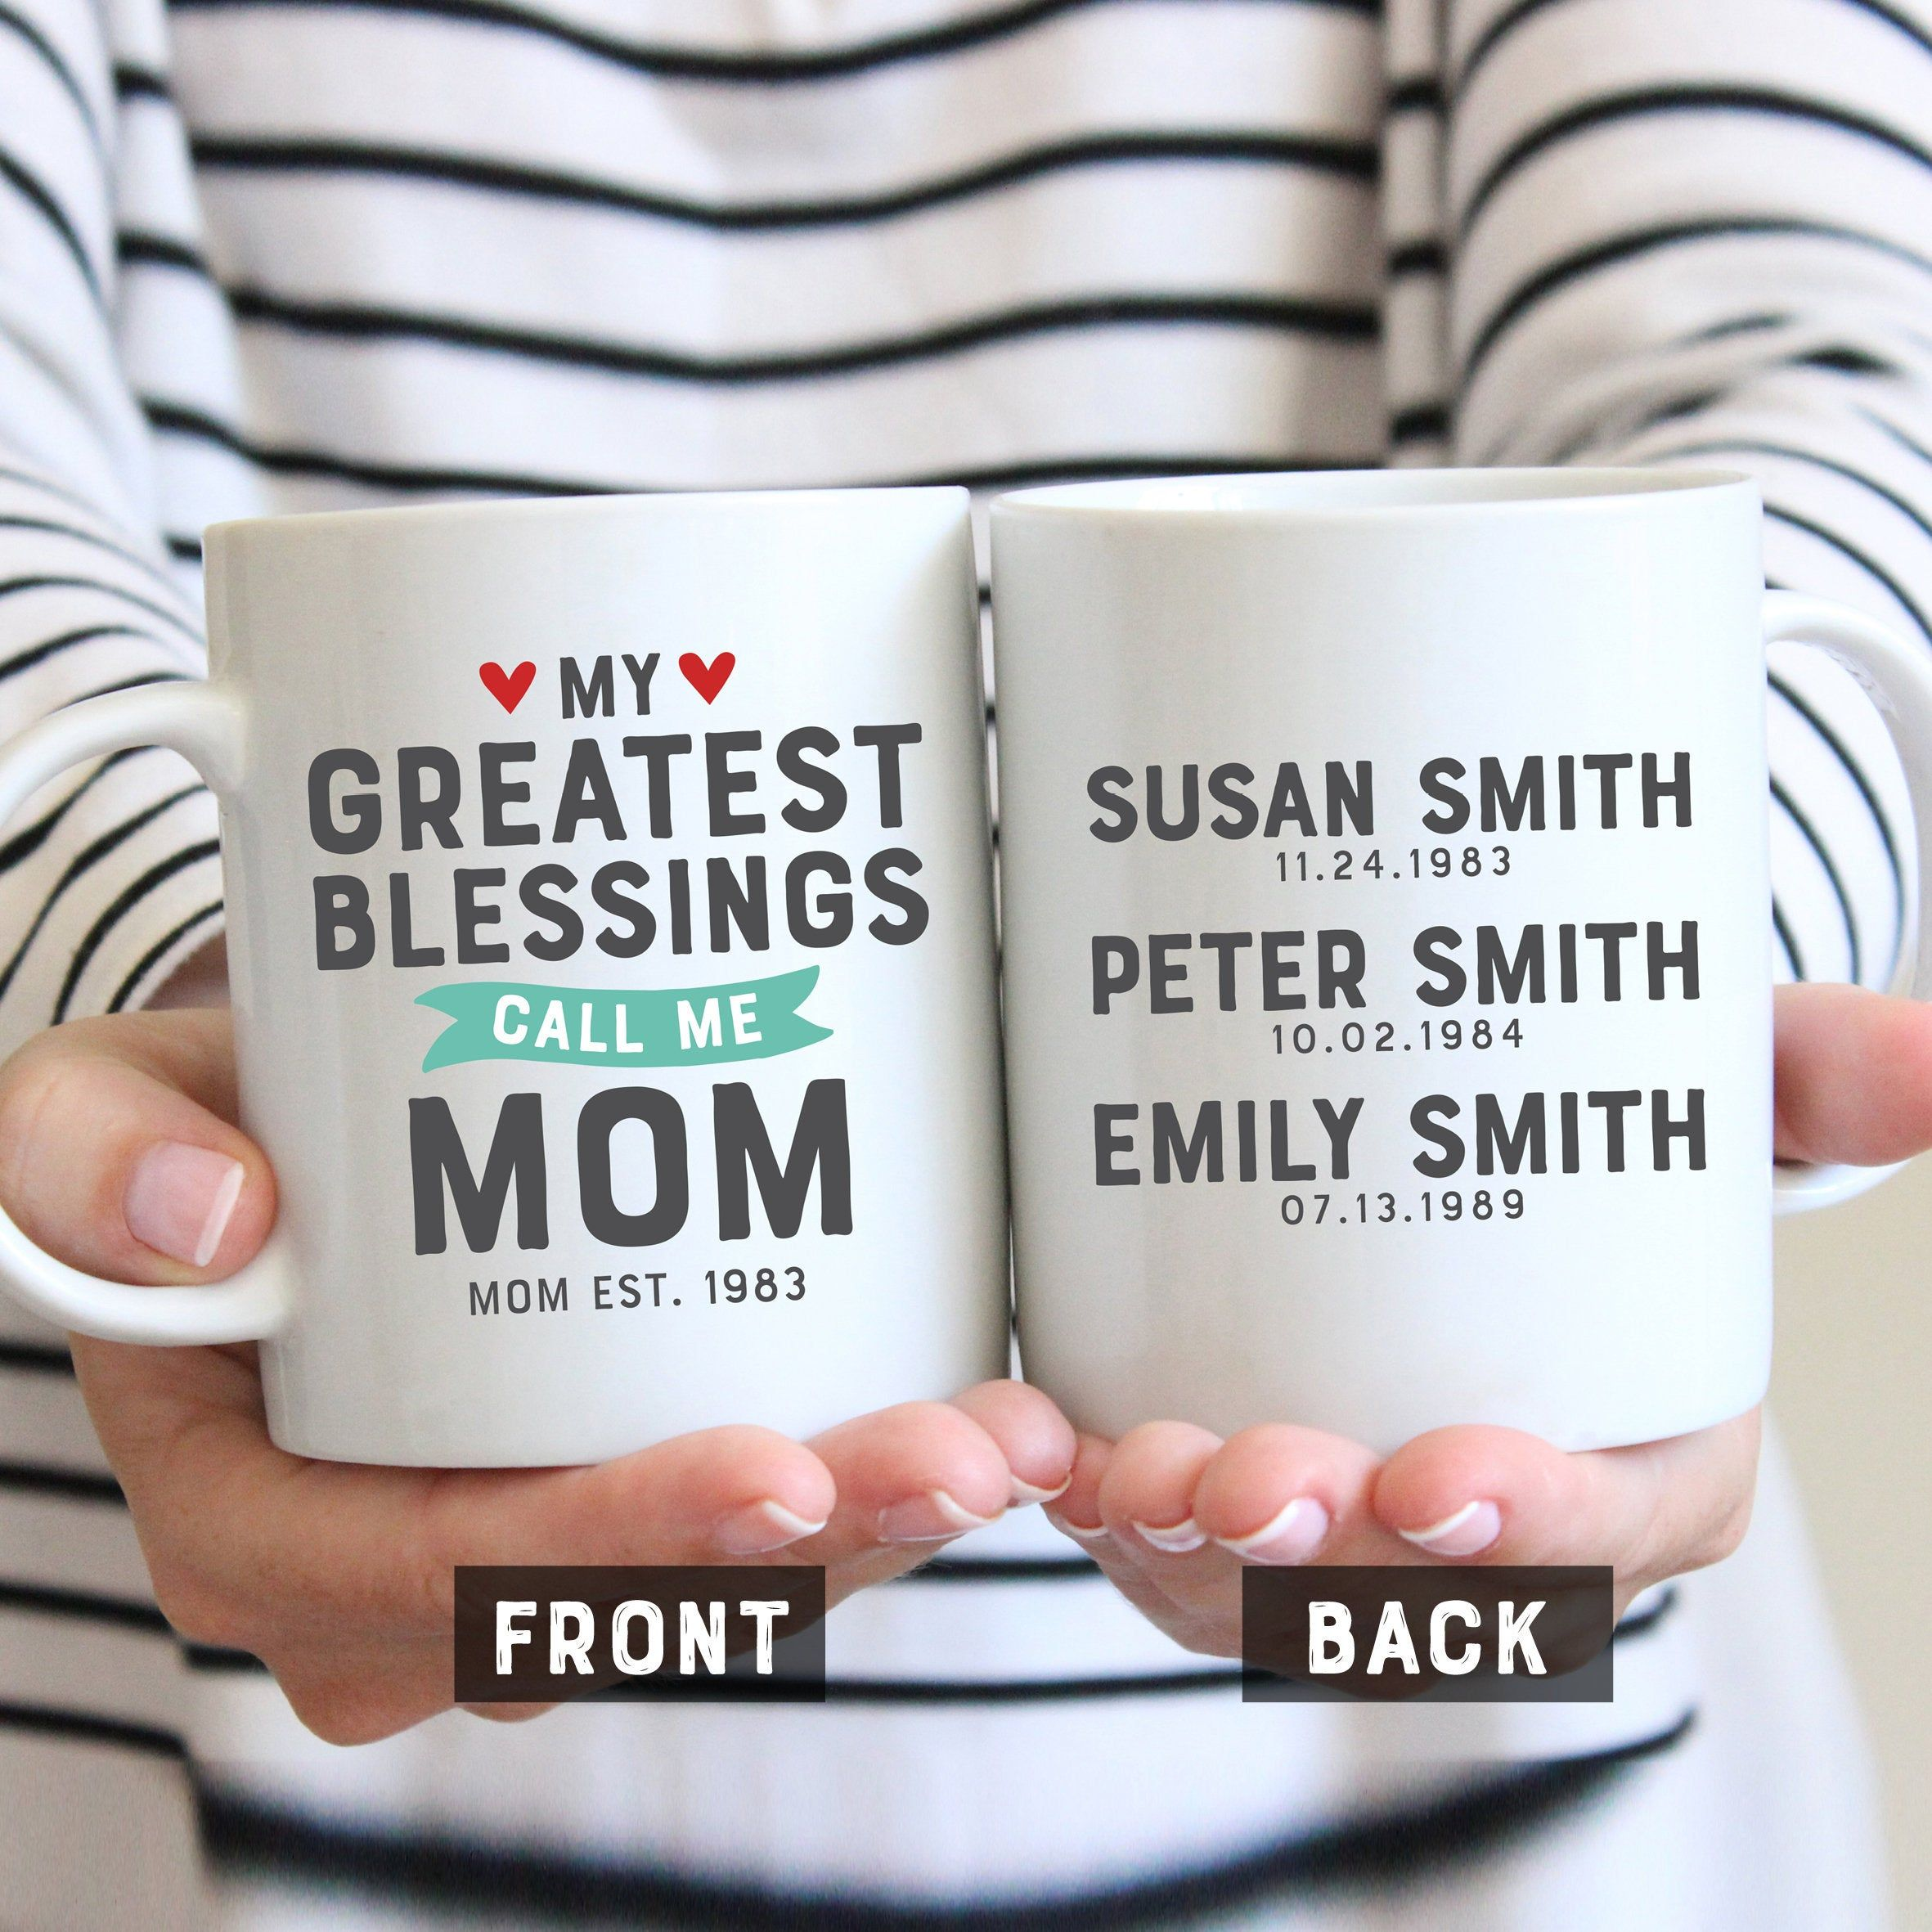 My Greatest Blessings Call Me Mom, Christmas Gift For Mom, Mom Gift, Mothers Day Gift, Gift For Mom Mug, Mothers Day Mug, Mom Gift From Kids #grandpagifts